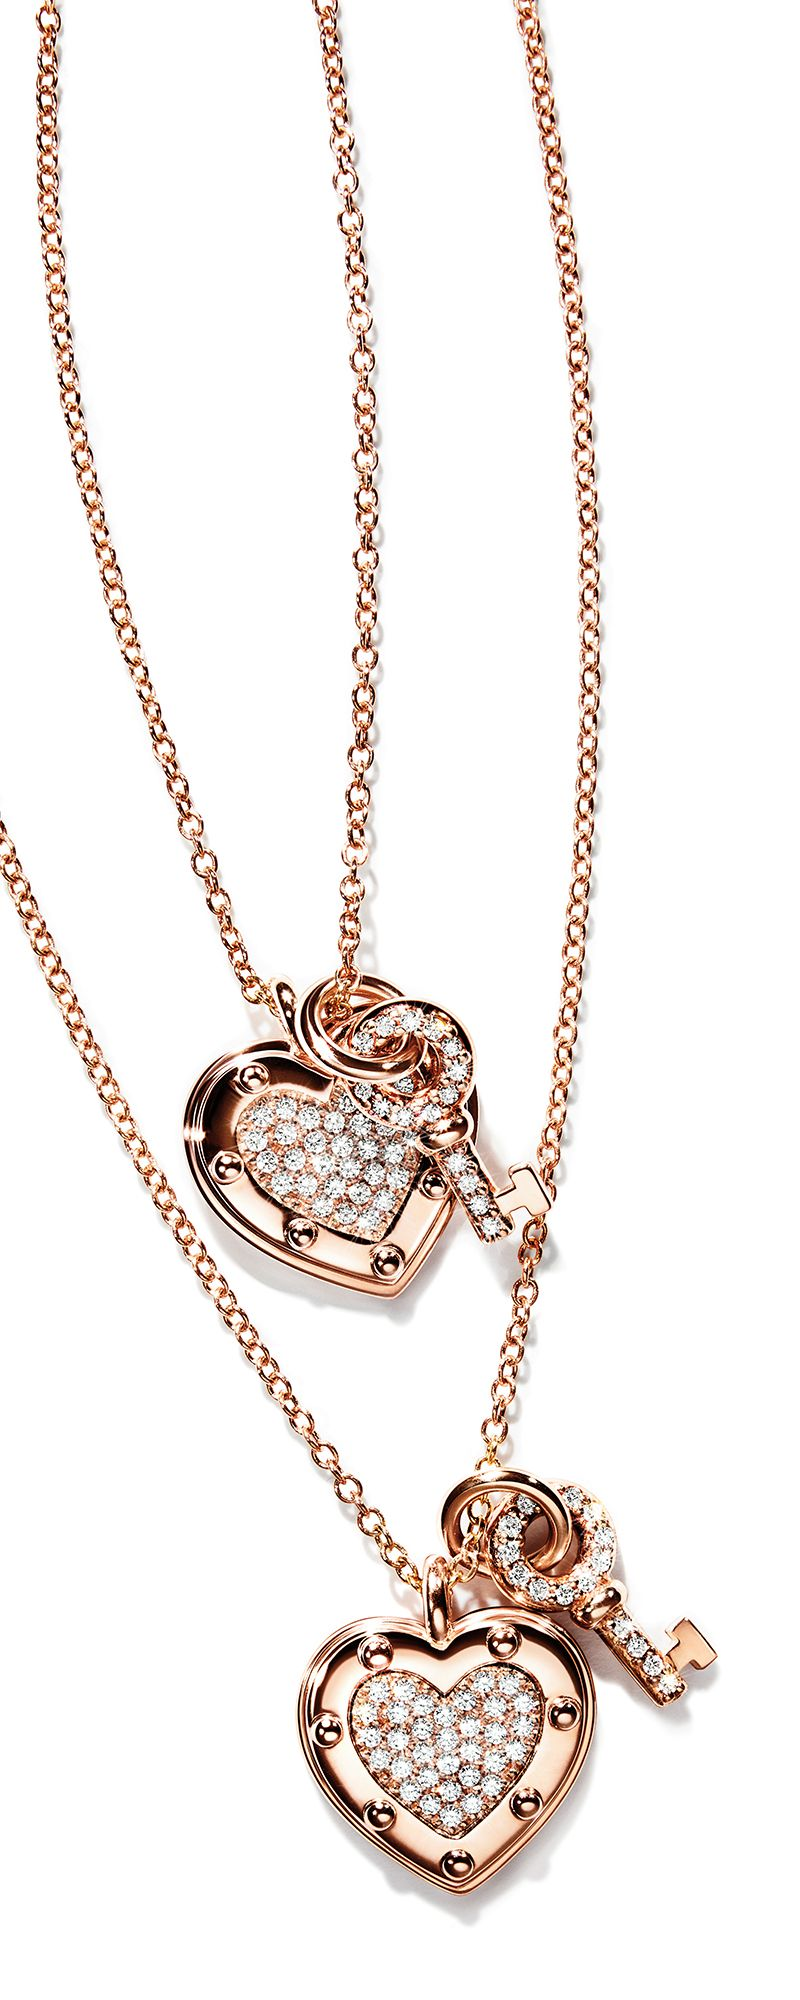 ee43b3fcf Return to Tiffany® Love heart tag key pendants in 18k rose gold with  diamonds.